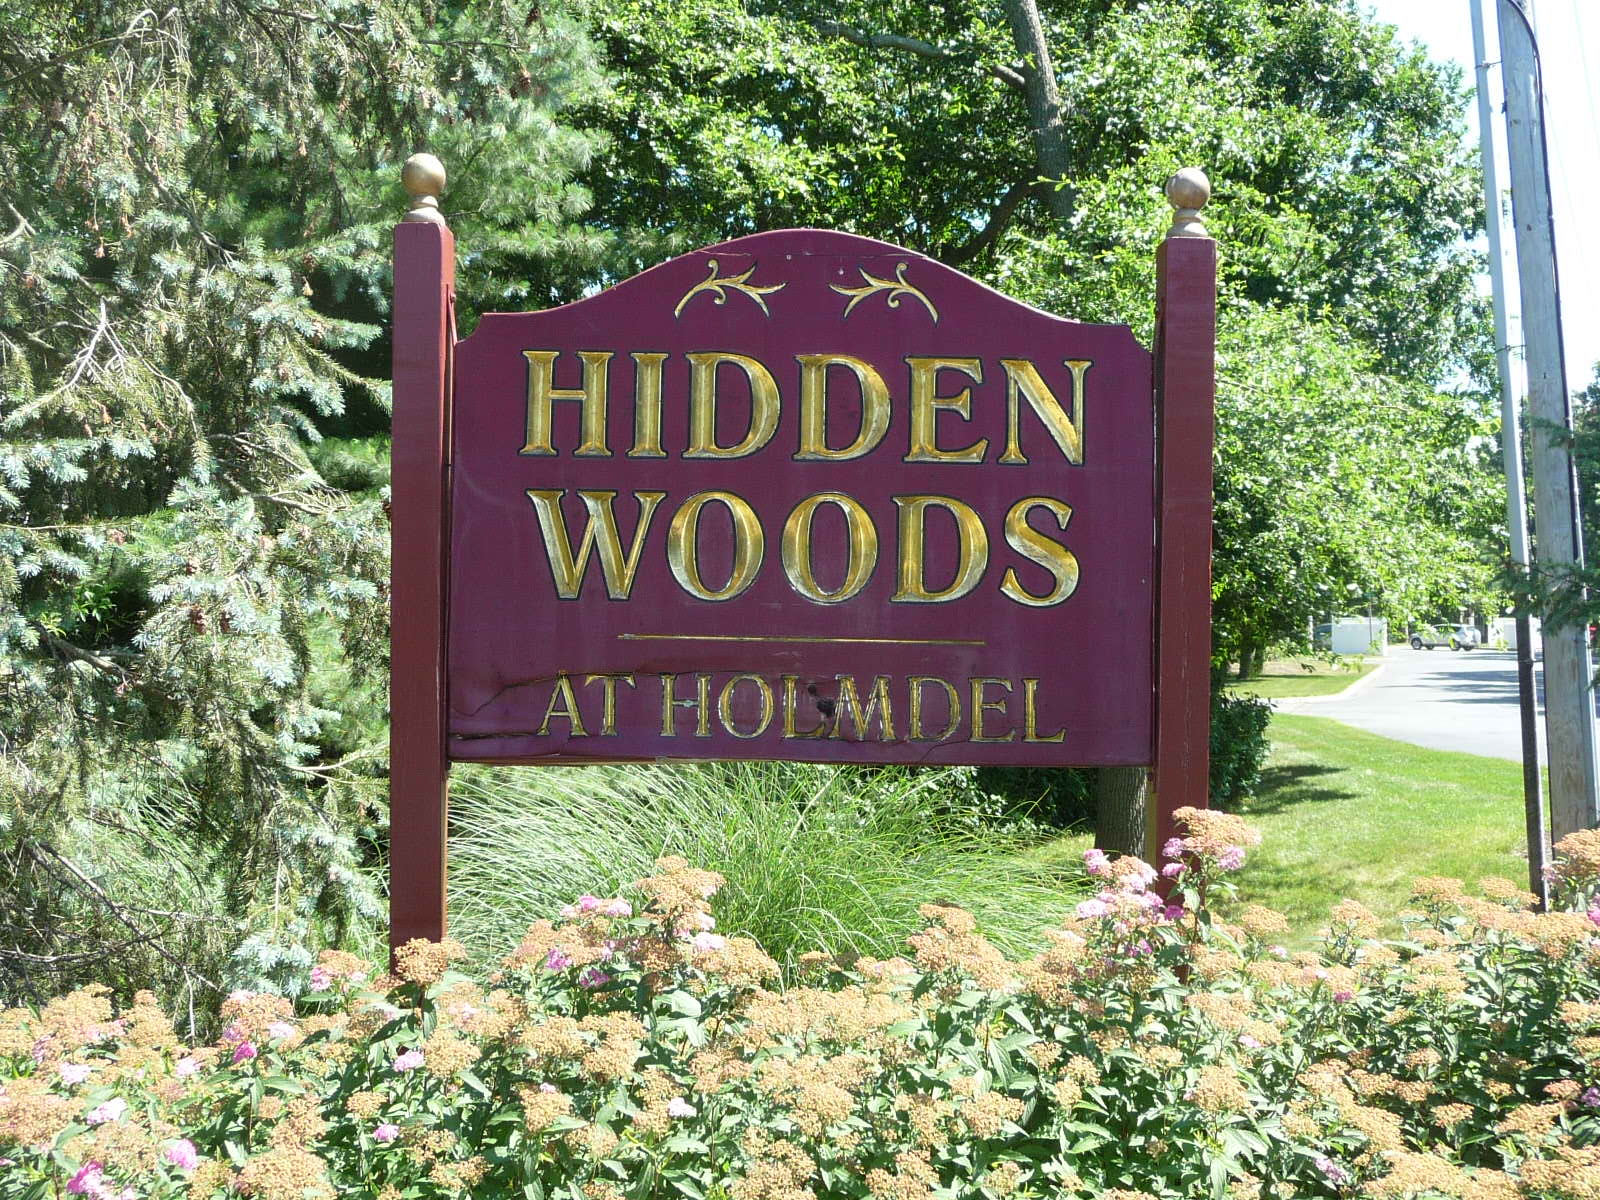 Hidden Woods condos are on Lexington Court in Holmdel, just off of Middle Road